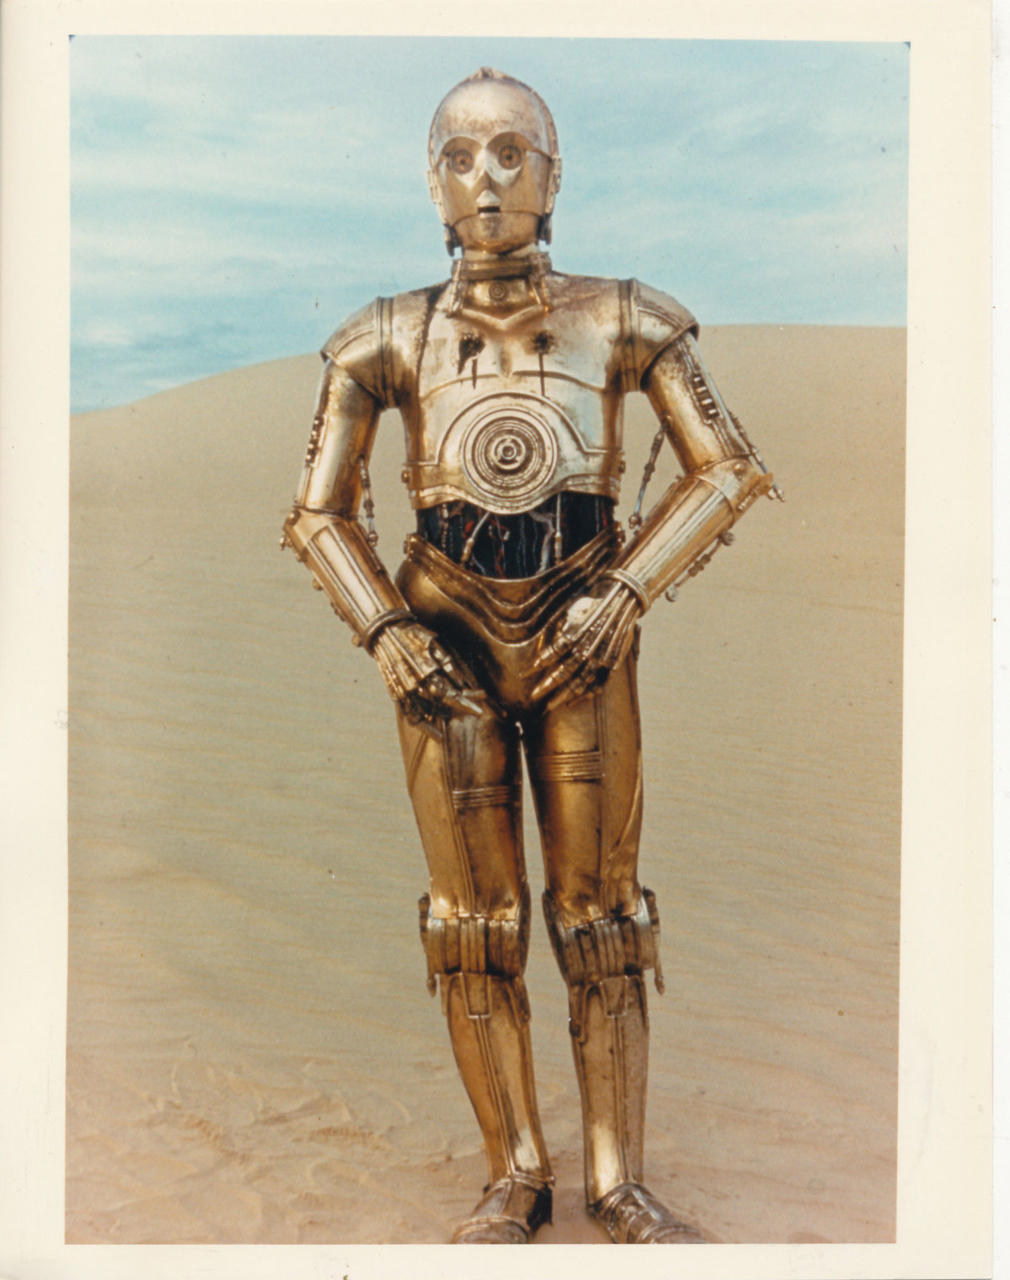 In how many languages is C-3P0 fluent?